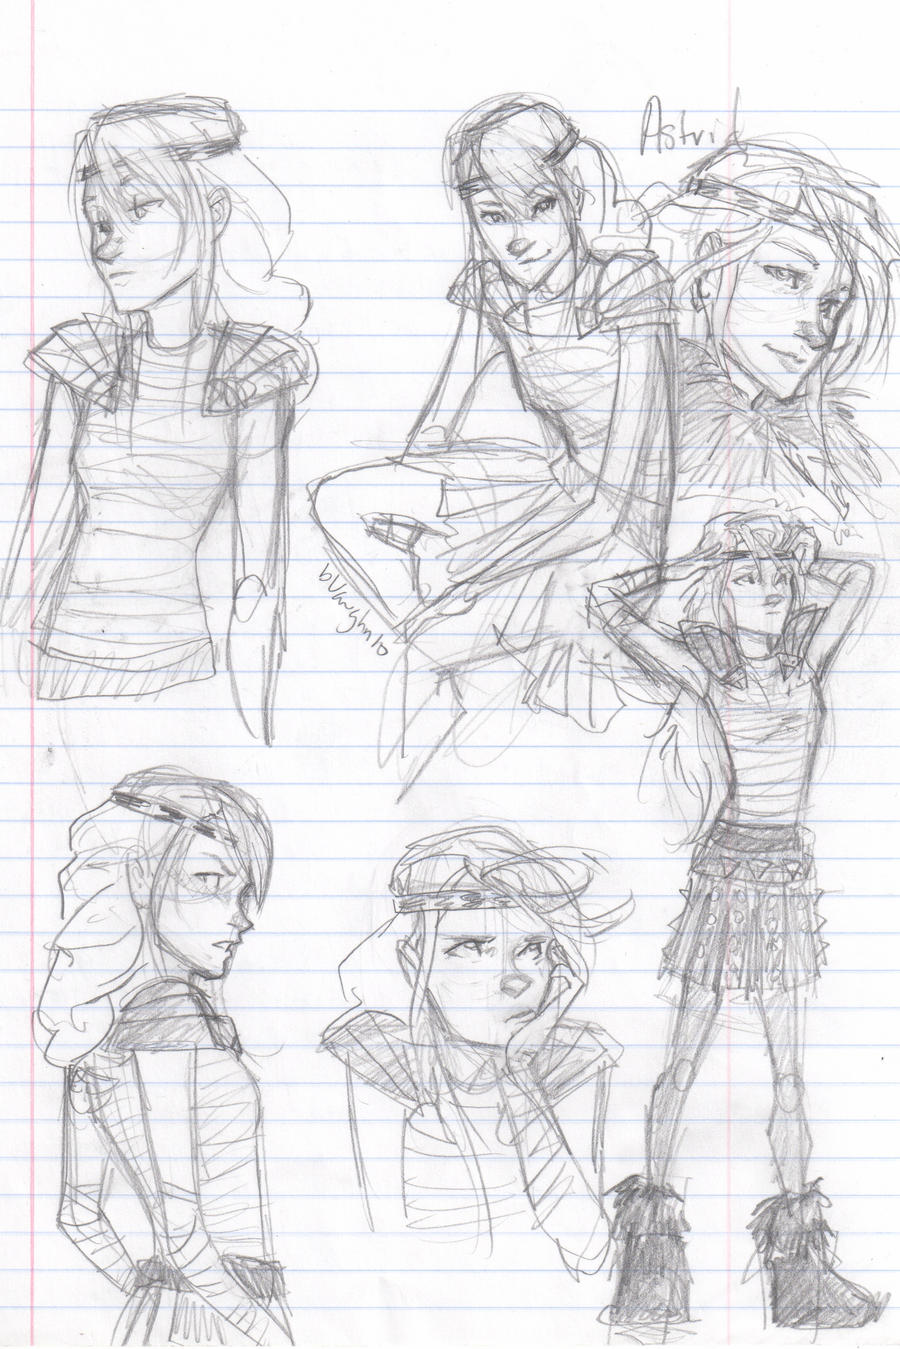 Astrid sketchies by burdge on DeviantArt